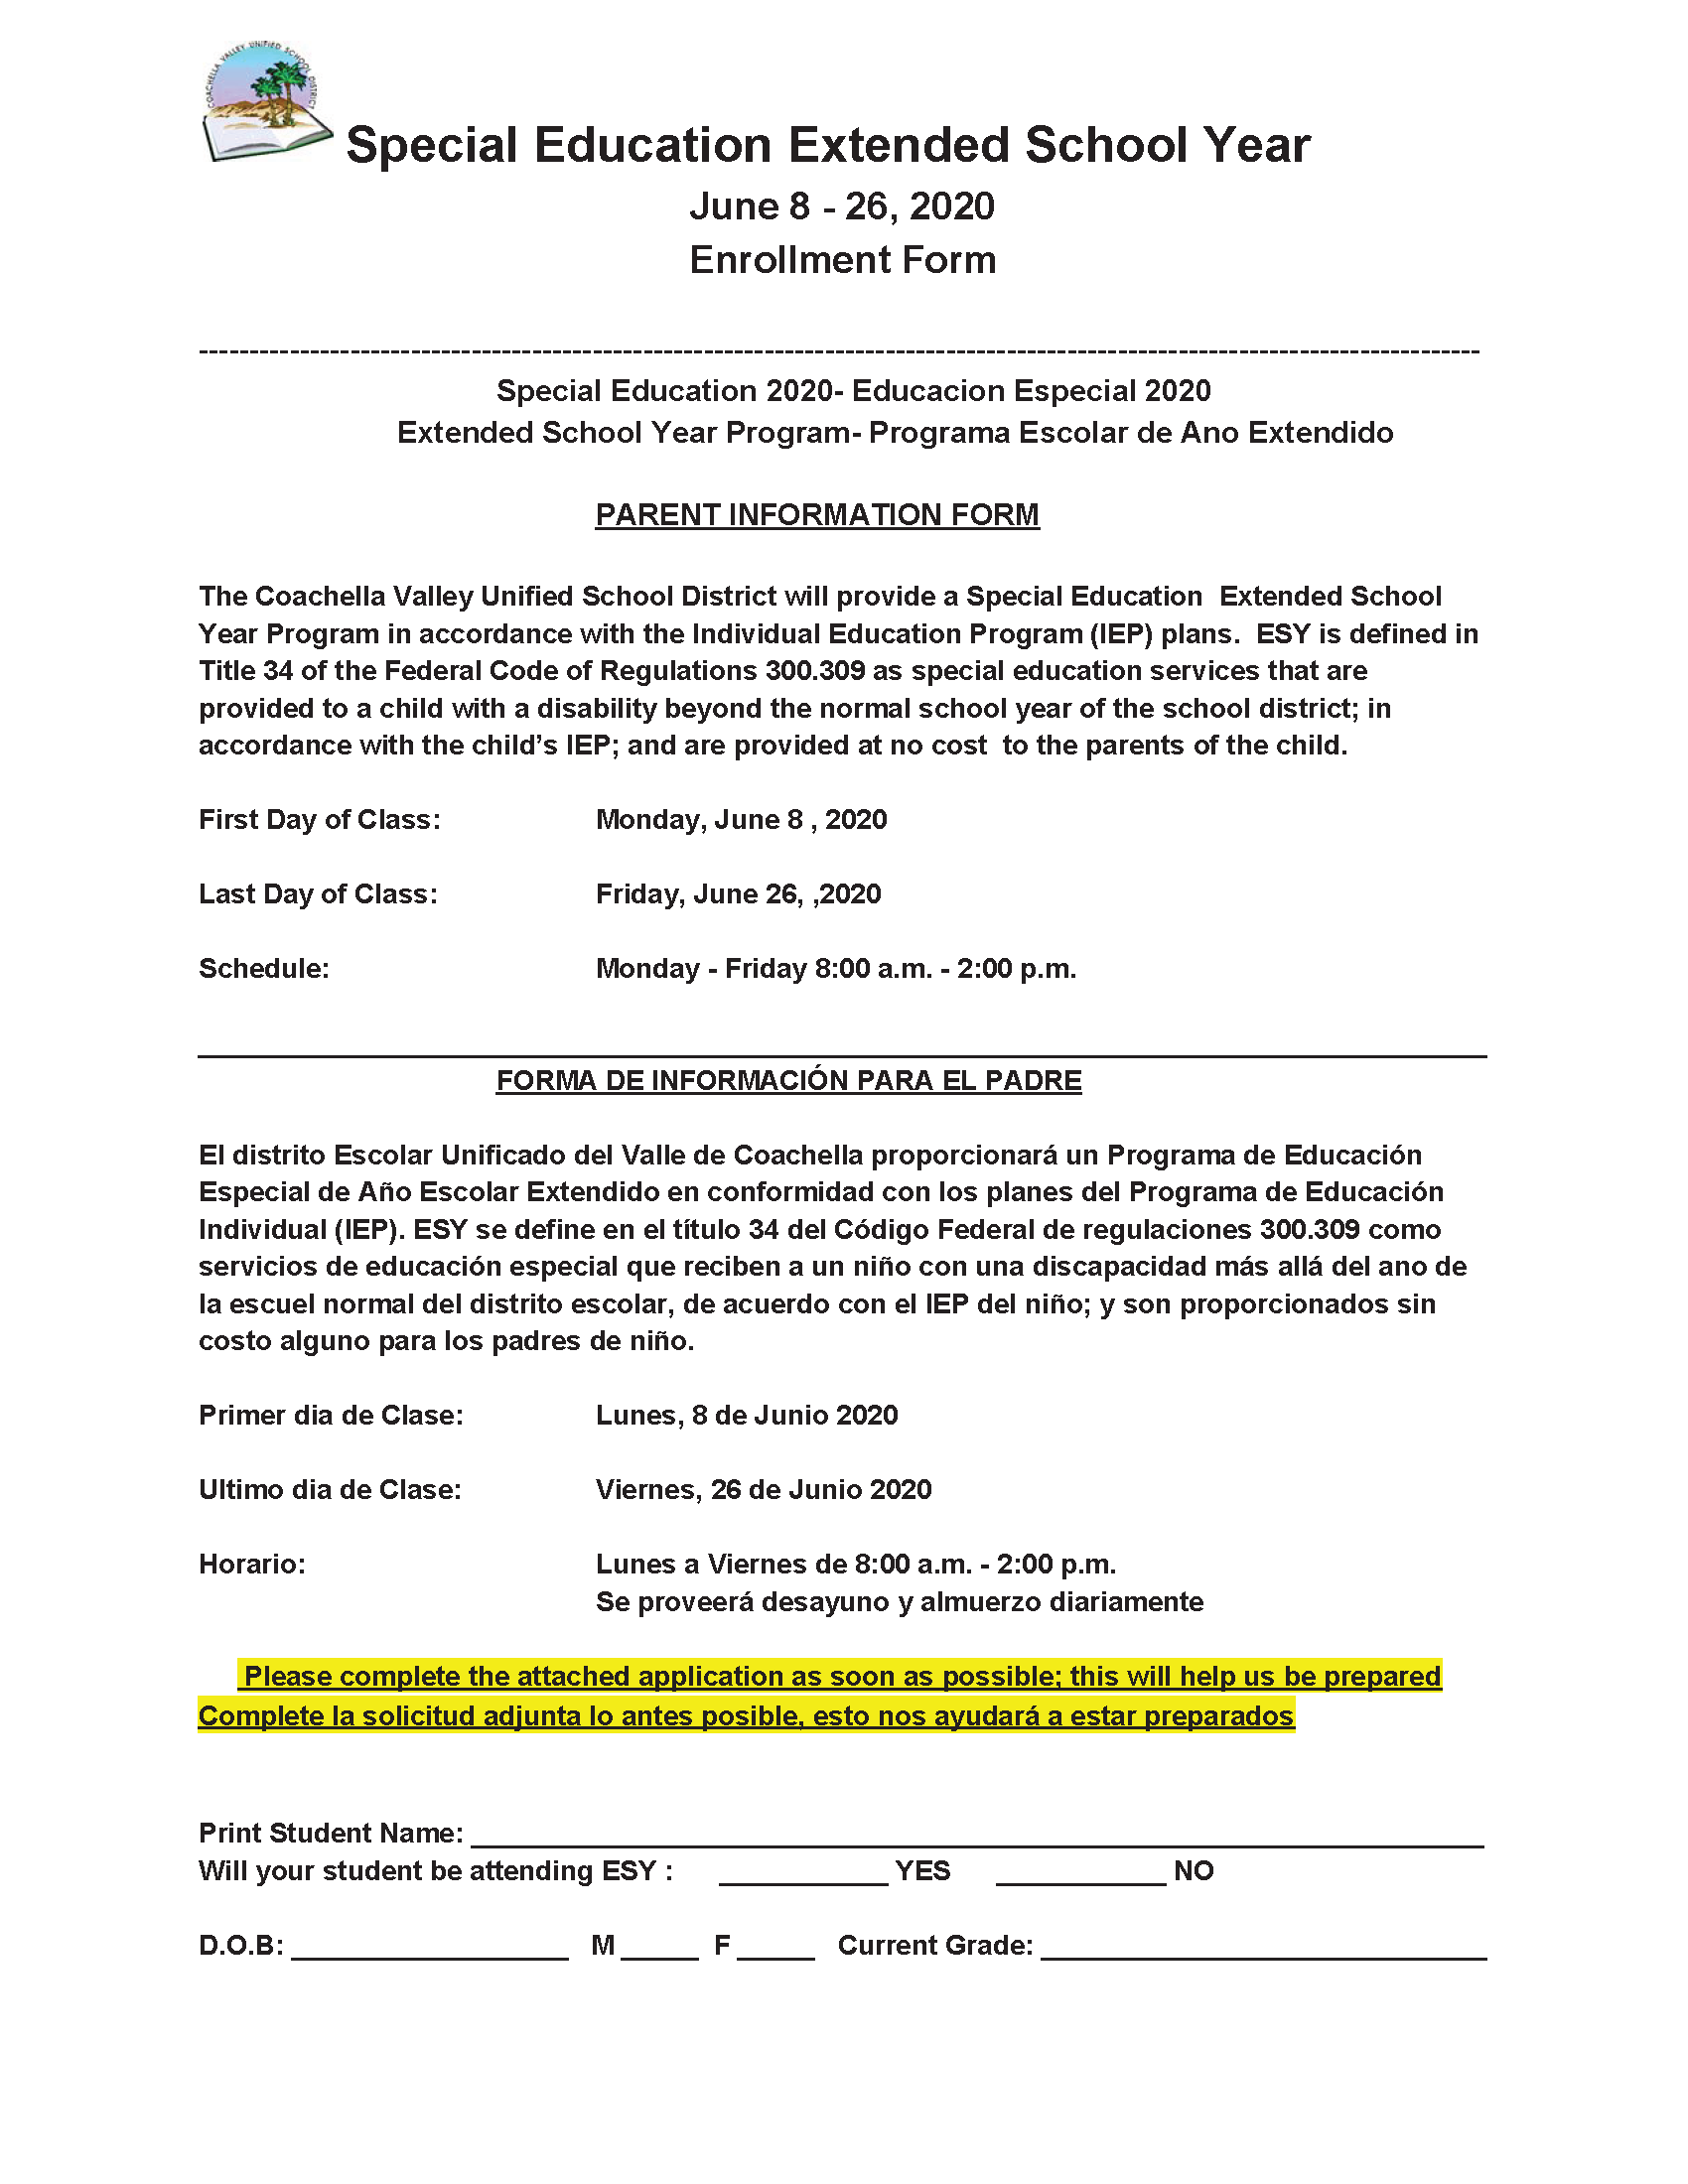 CVUSD Announcement: English Spanish ESY 2020 Application